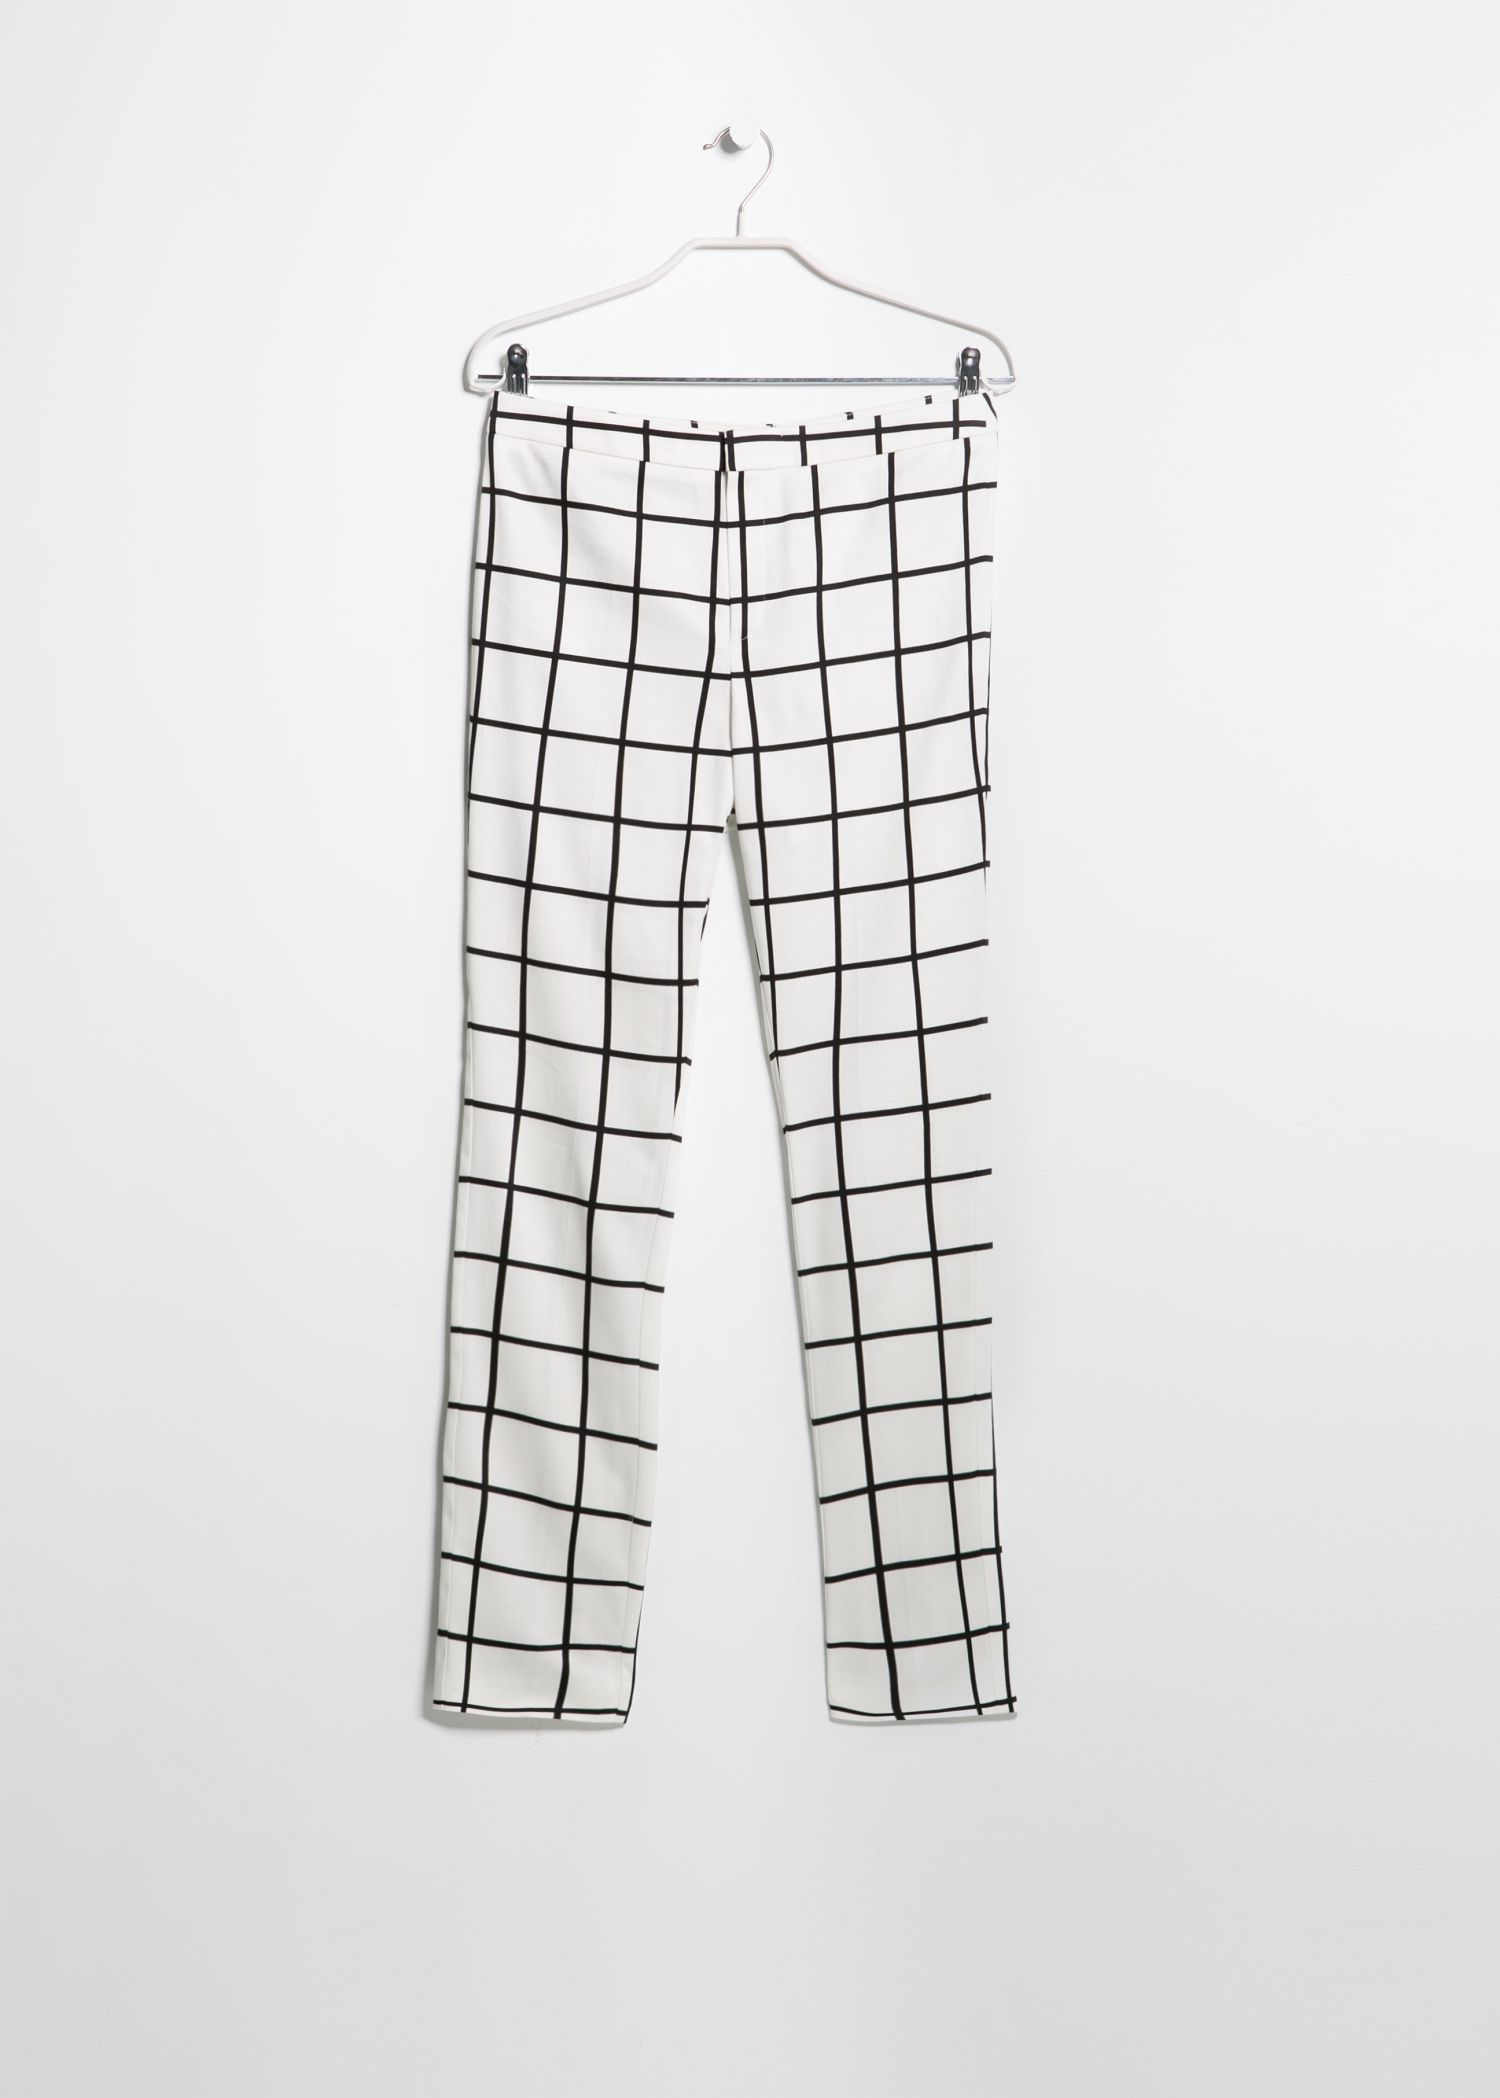 6b9a0f75 Latest Summer trends for women's trousers at ZARA online. Find leggings,  joggers, shorts, culottes, slacks, capris, leather, flared and palazzo pants .